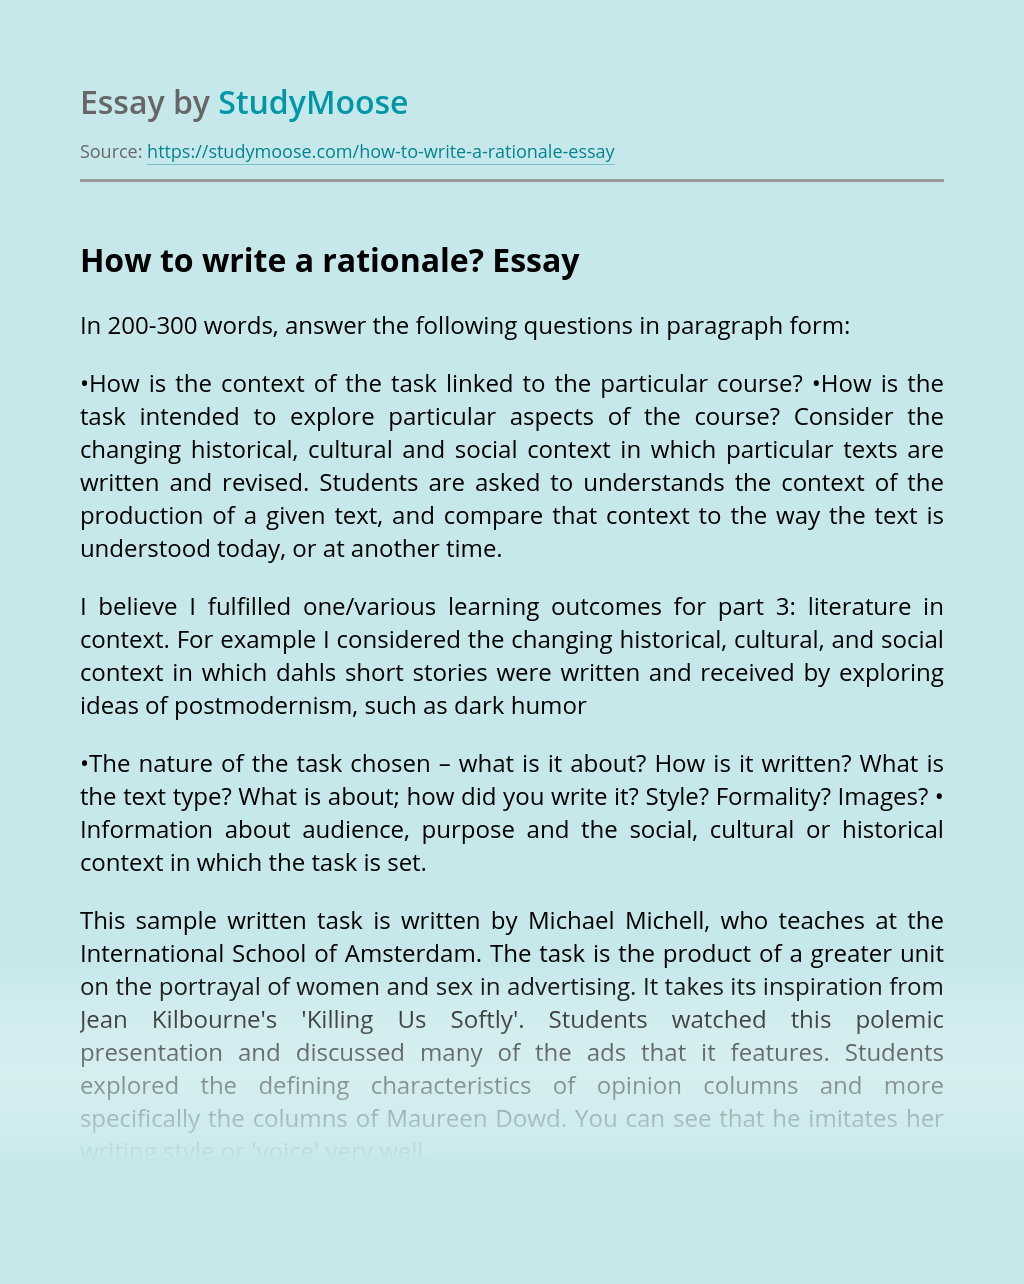 How to write a rationale?